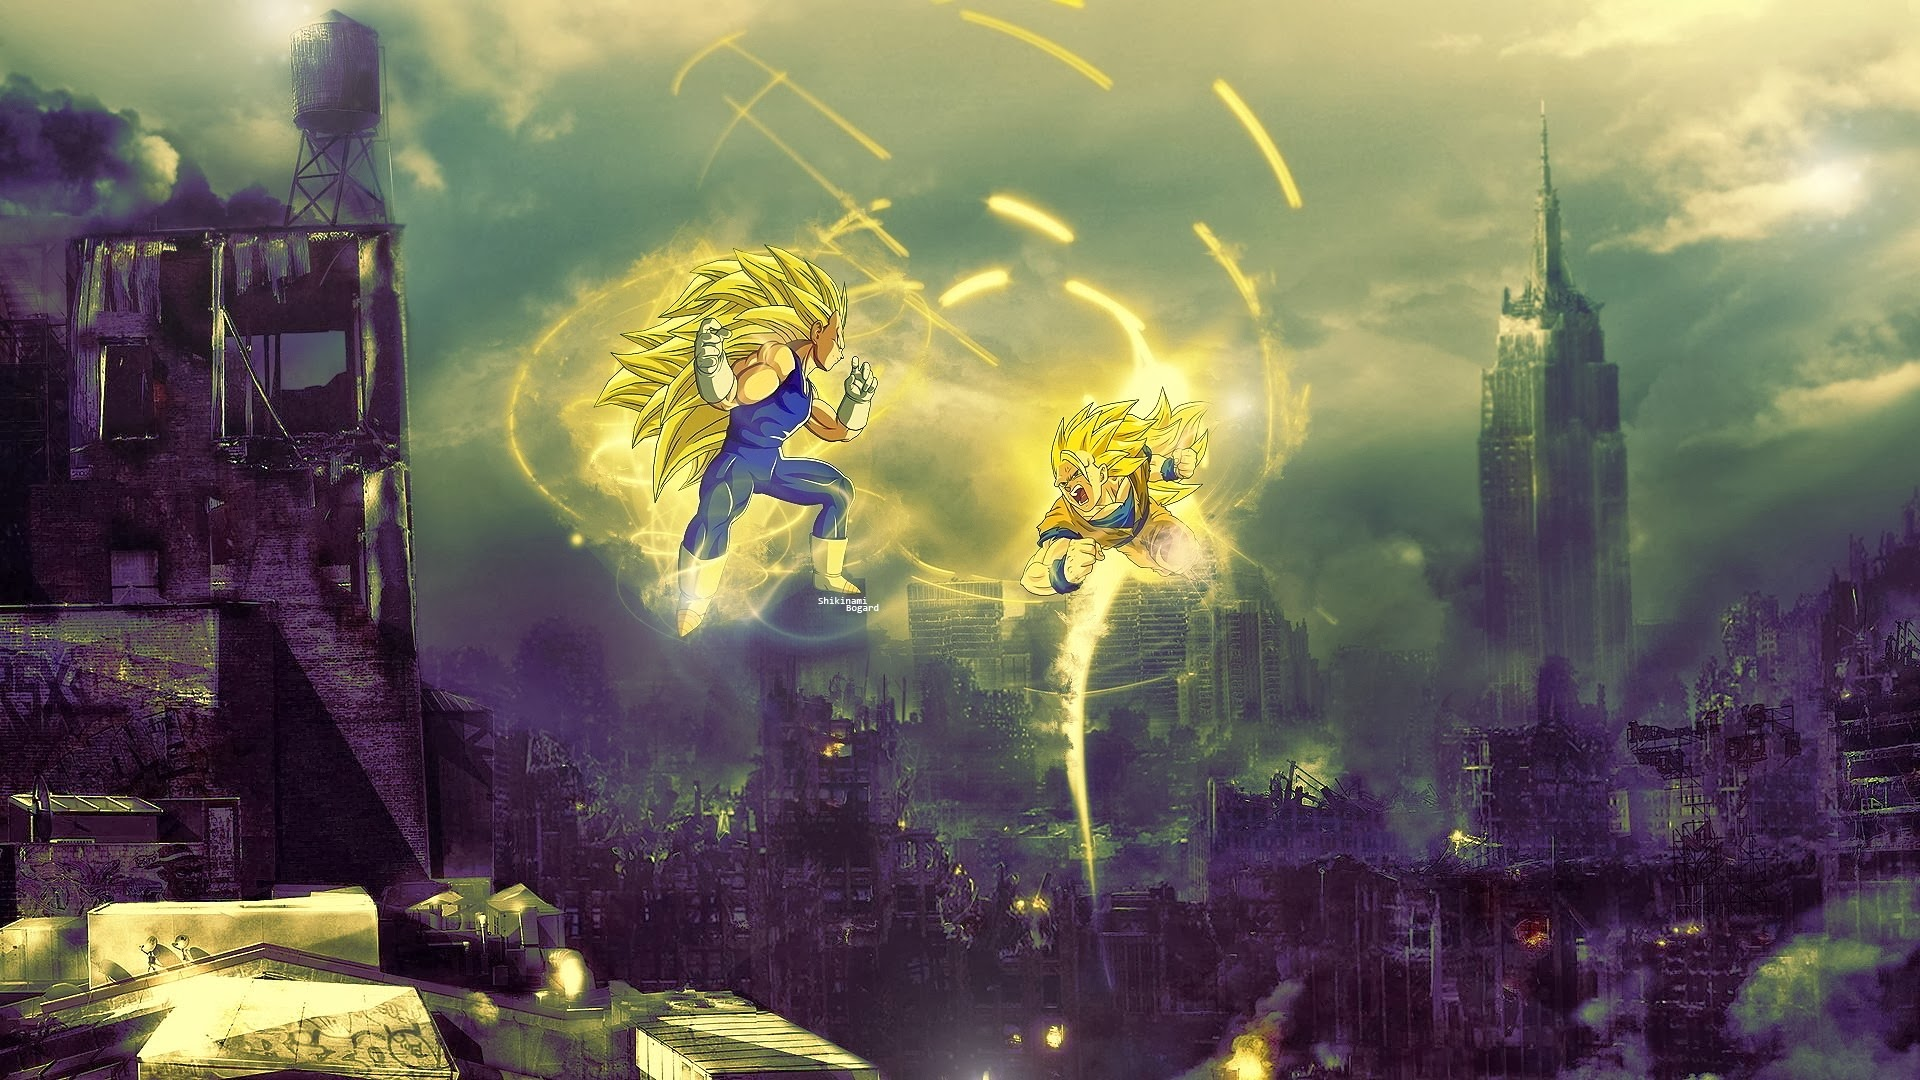 Super Saiyan 3 Vegata Vs Goku 9h Wallpaper HD